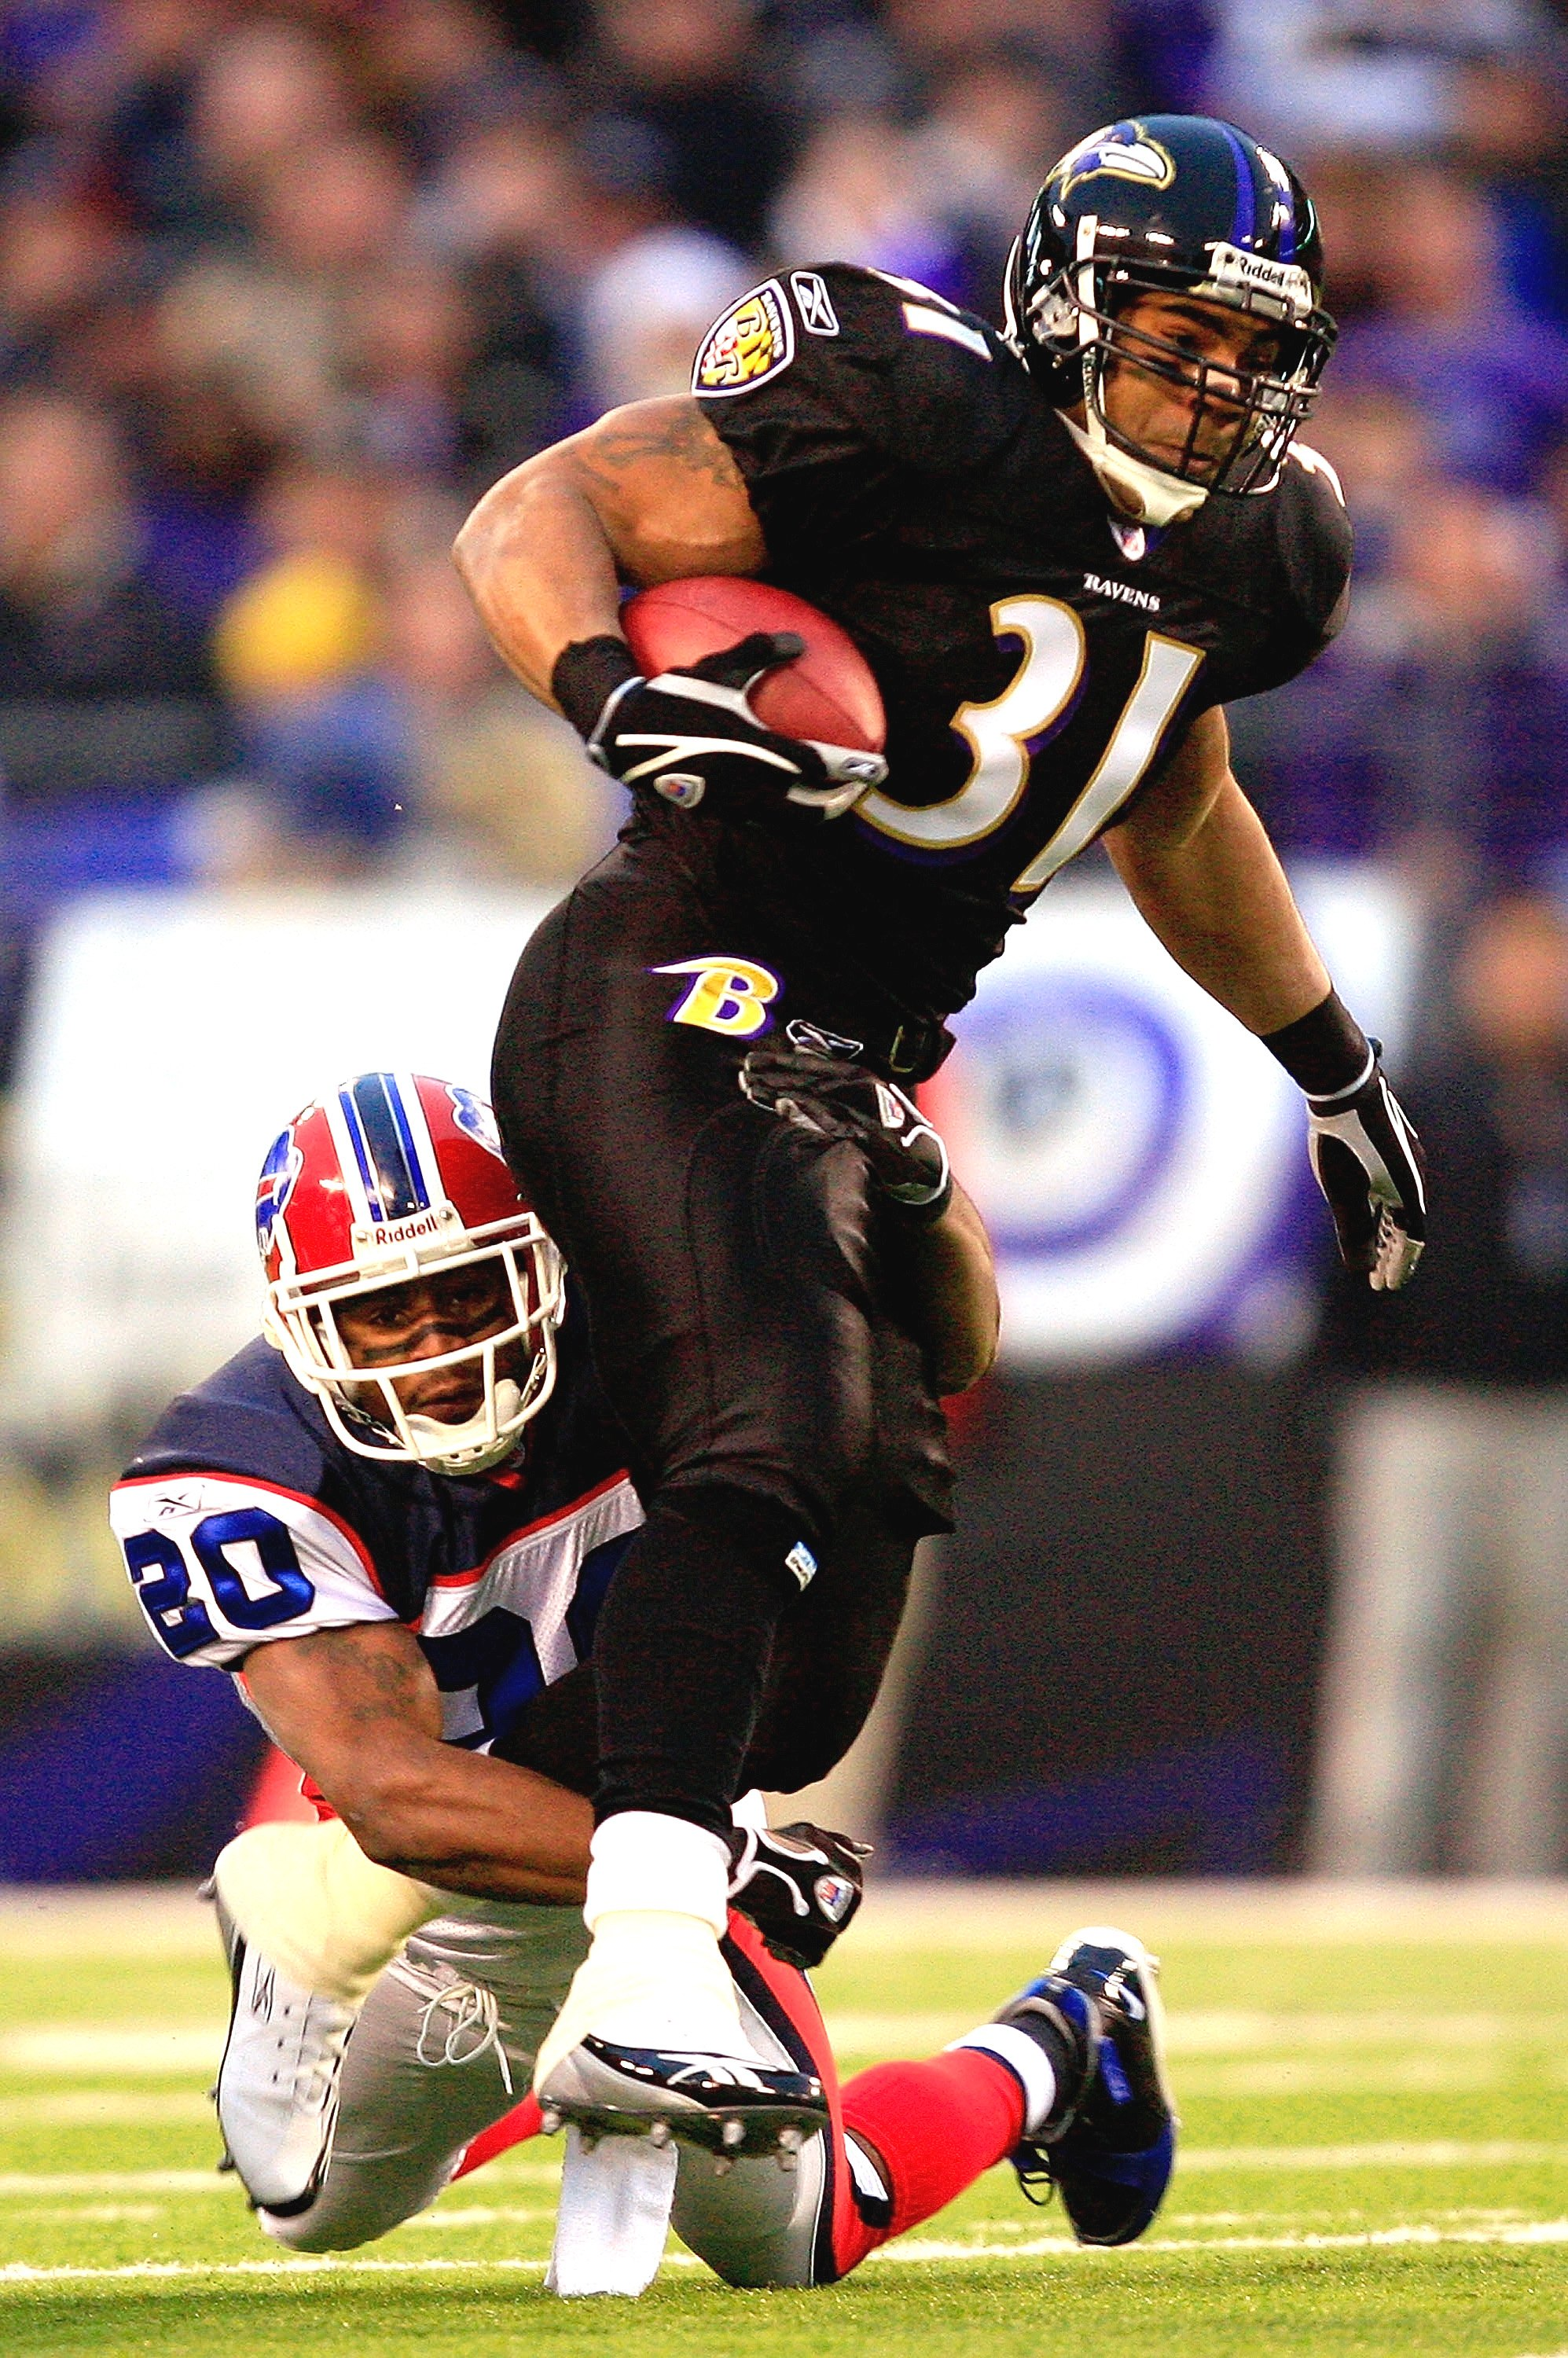 BALTIMORE - DECEMBER 31:  Jamal Lewis #31 of the Baltimore Ravens carries the ball as Donte Whitner #20 of the Buffalo Bills defends during the first half of the game on December 31, 2006 at M&T Bank Stadium in Baltimore, Maryland.  (Photo by Jamie Squire